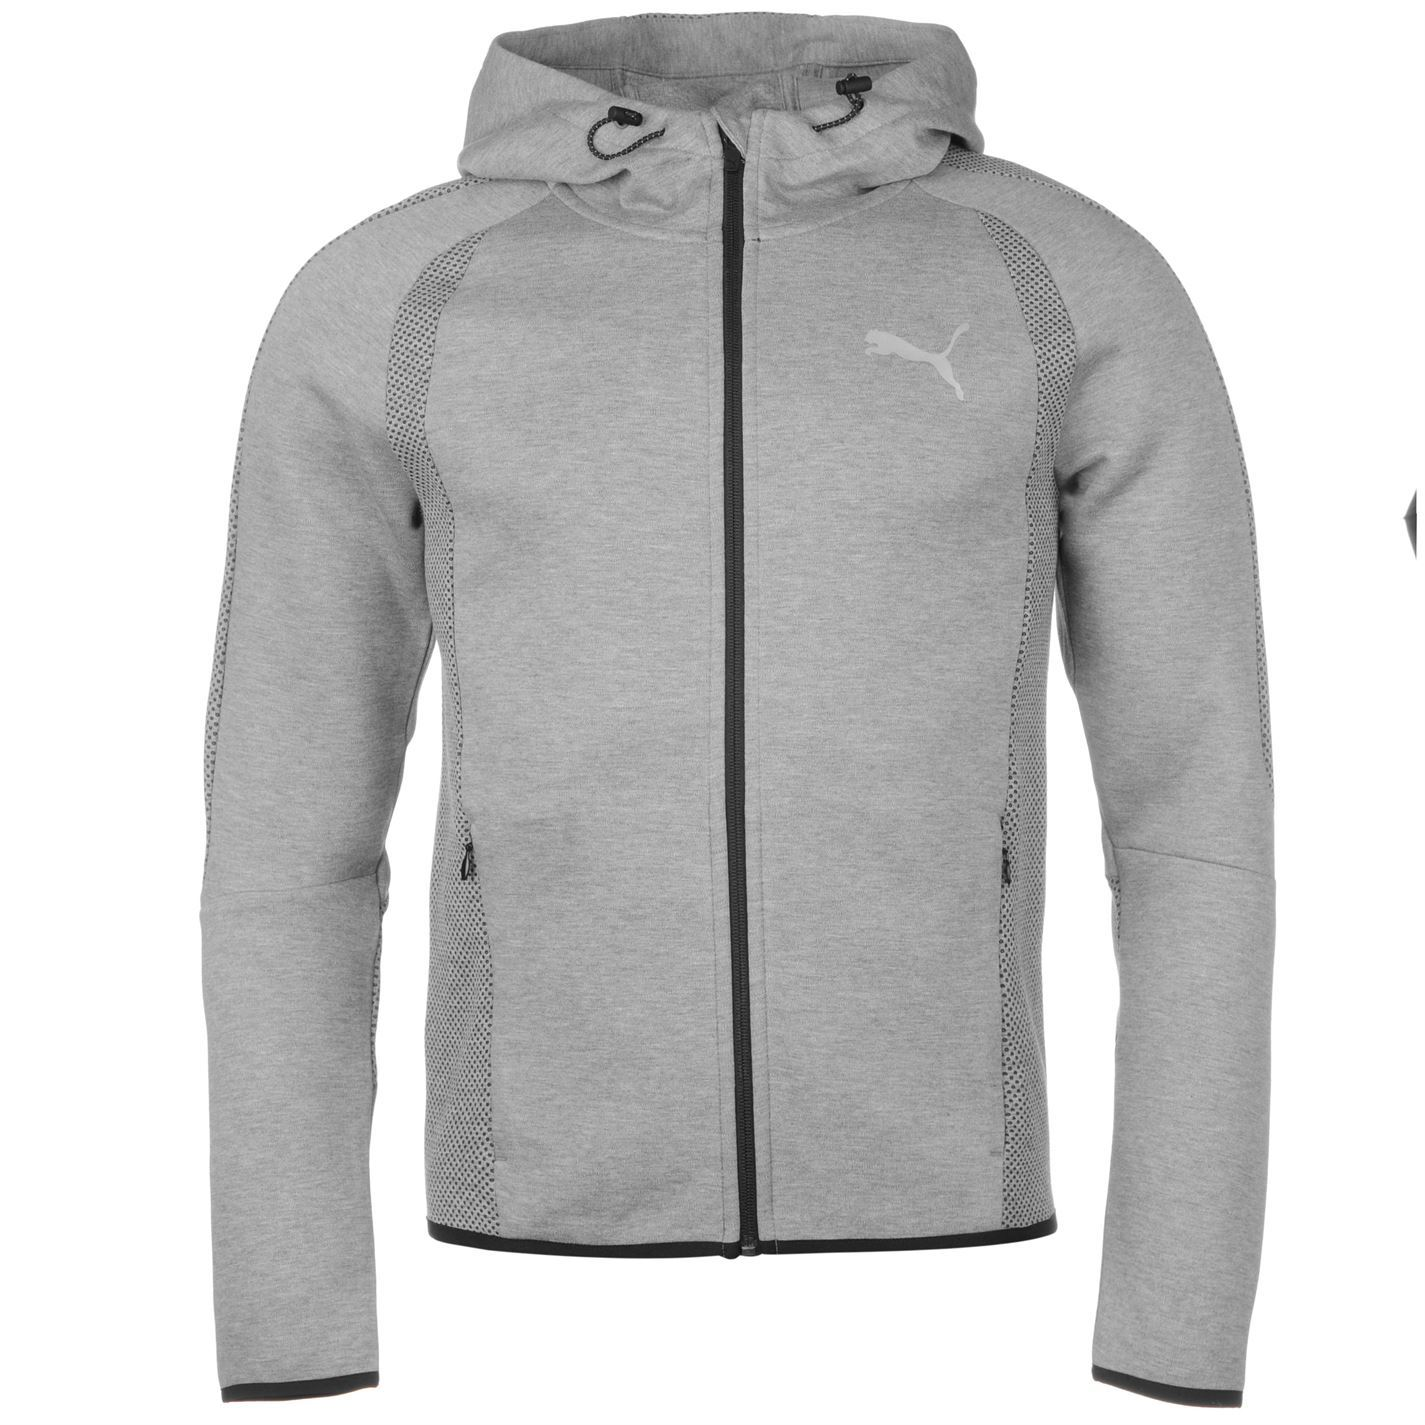 puma hoodie mens. puma evostripe ultimate full zip hoody mens be comfortable and stylish with the which is designed a hoodie